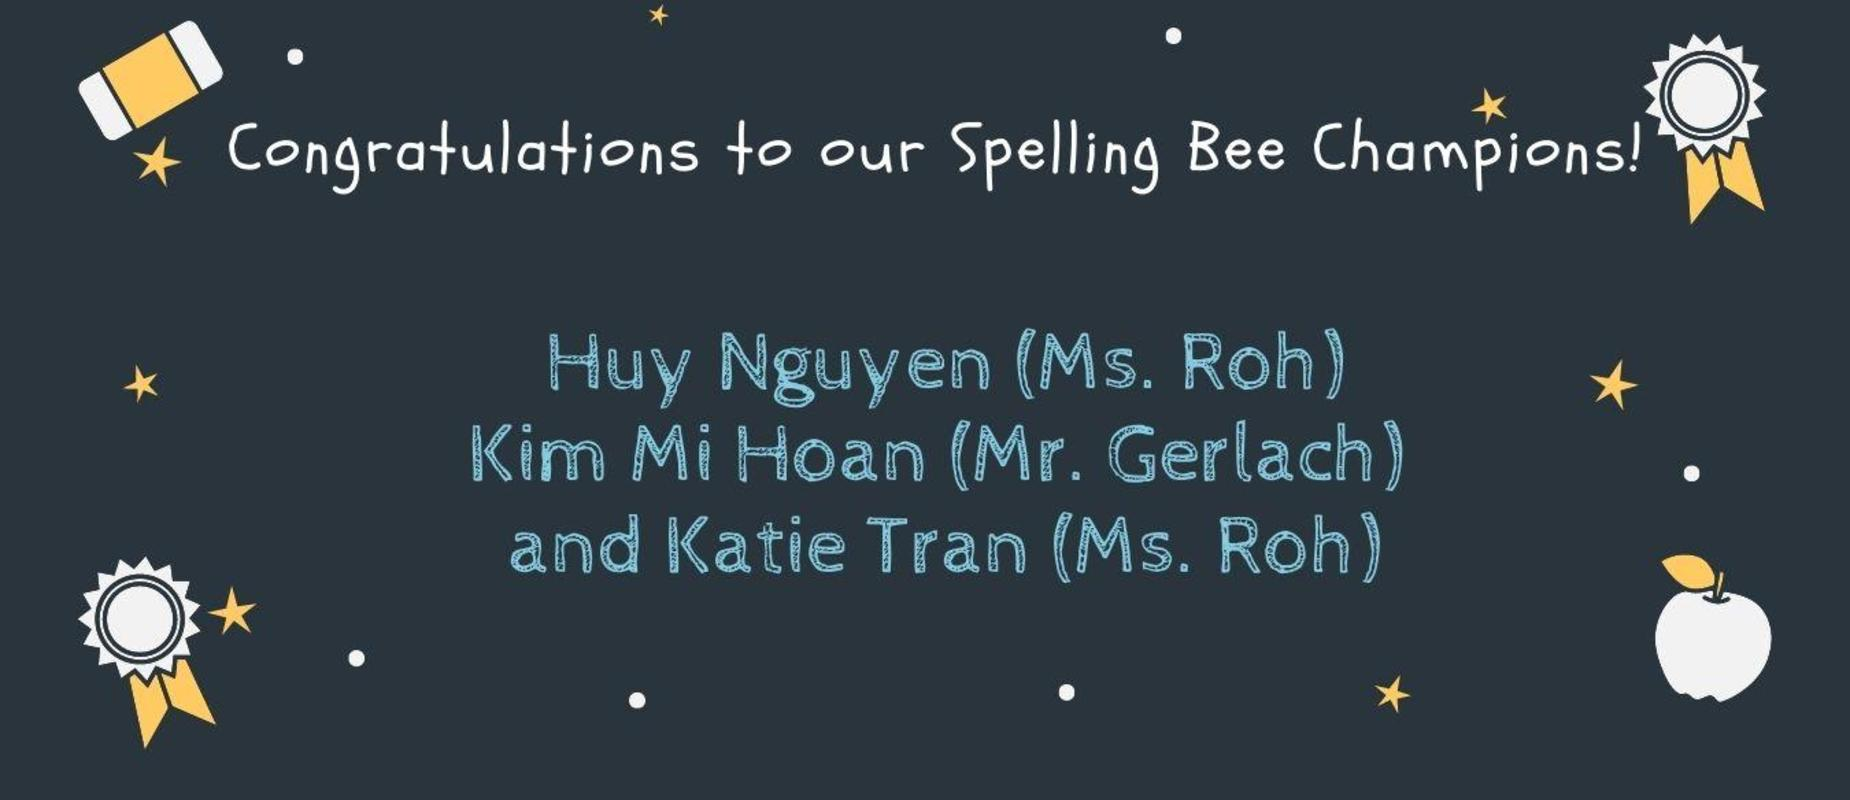 2020 - 2021 Spelling Bee Champions